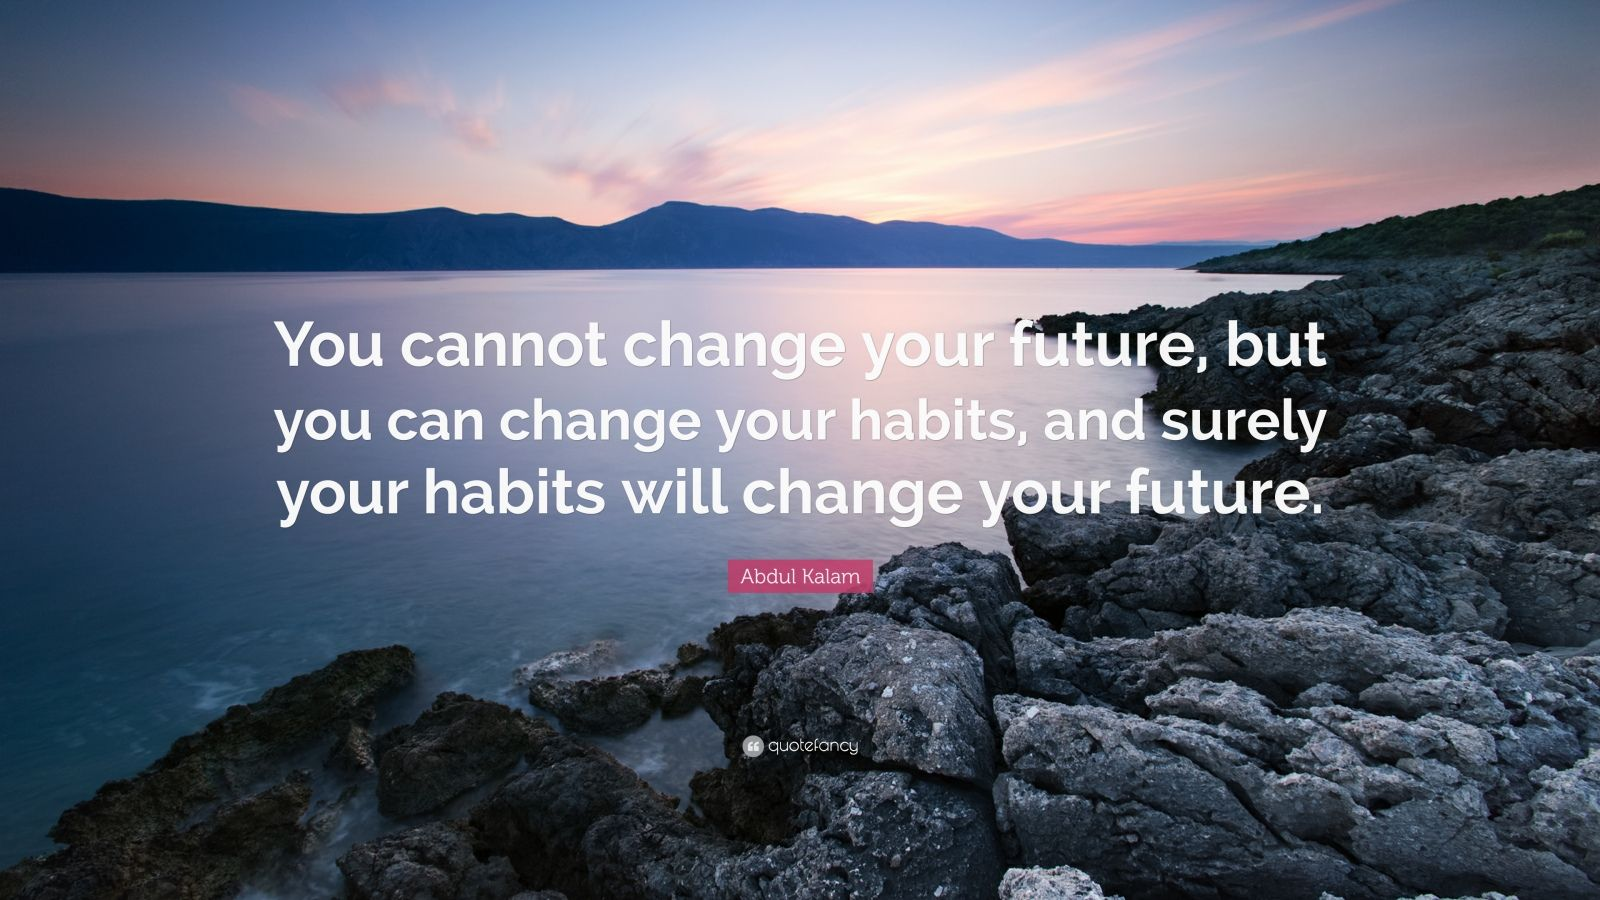 """Habit Quotes: """"You cannot change your future, but you can change your habits, and surely your habits will change your future."""" — Abdul Kalam"""